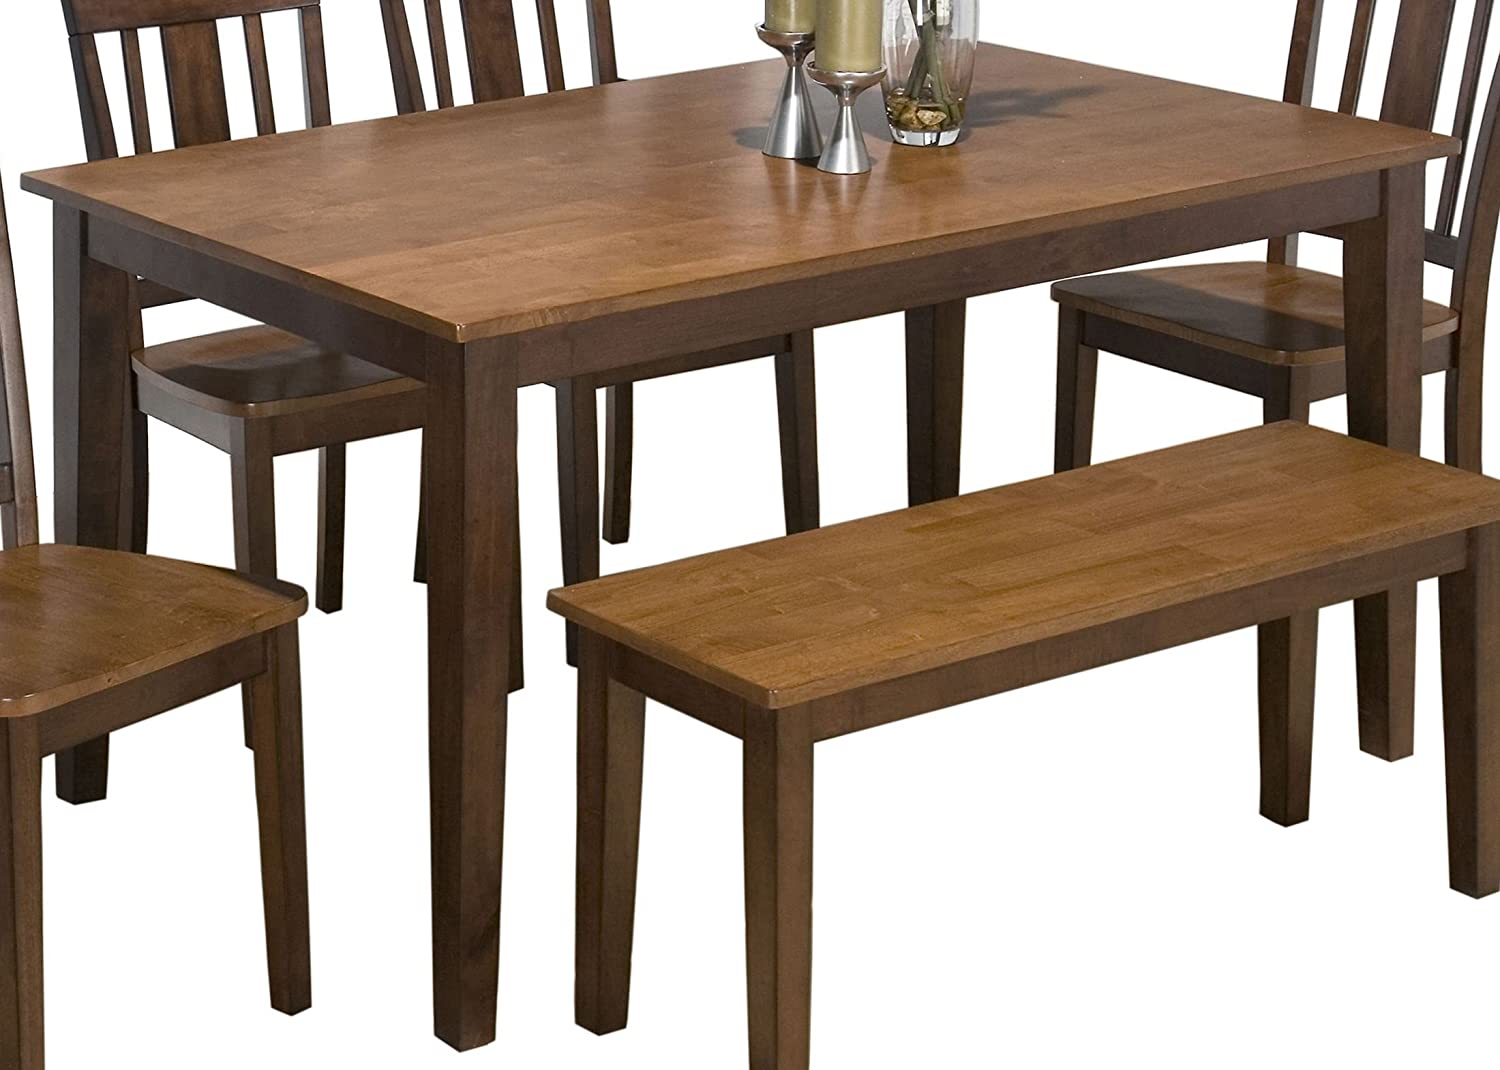 Jofran Rectangle Casual Dining Table in Kura Espresso and Canyon Gold